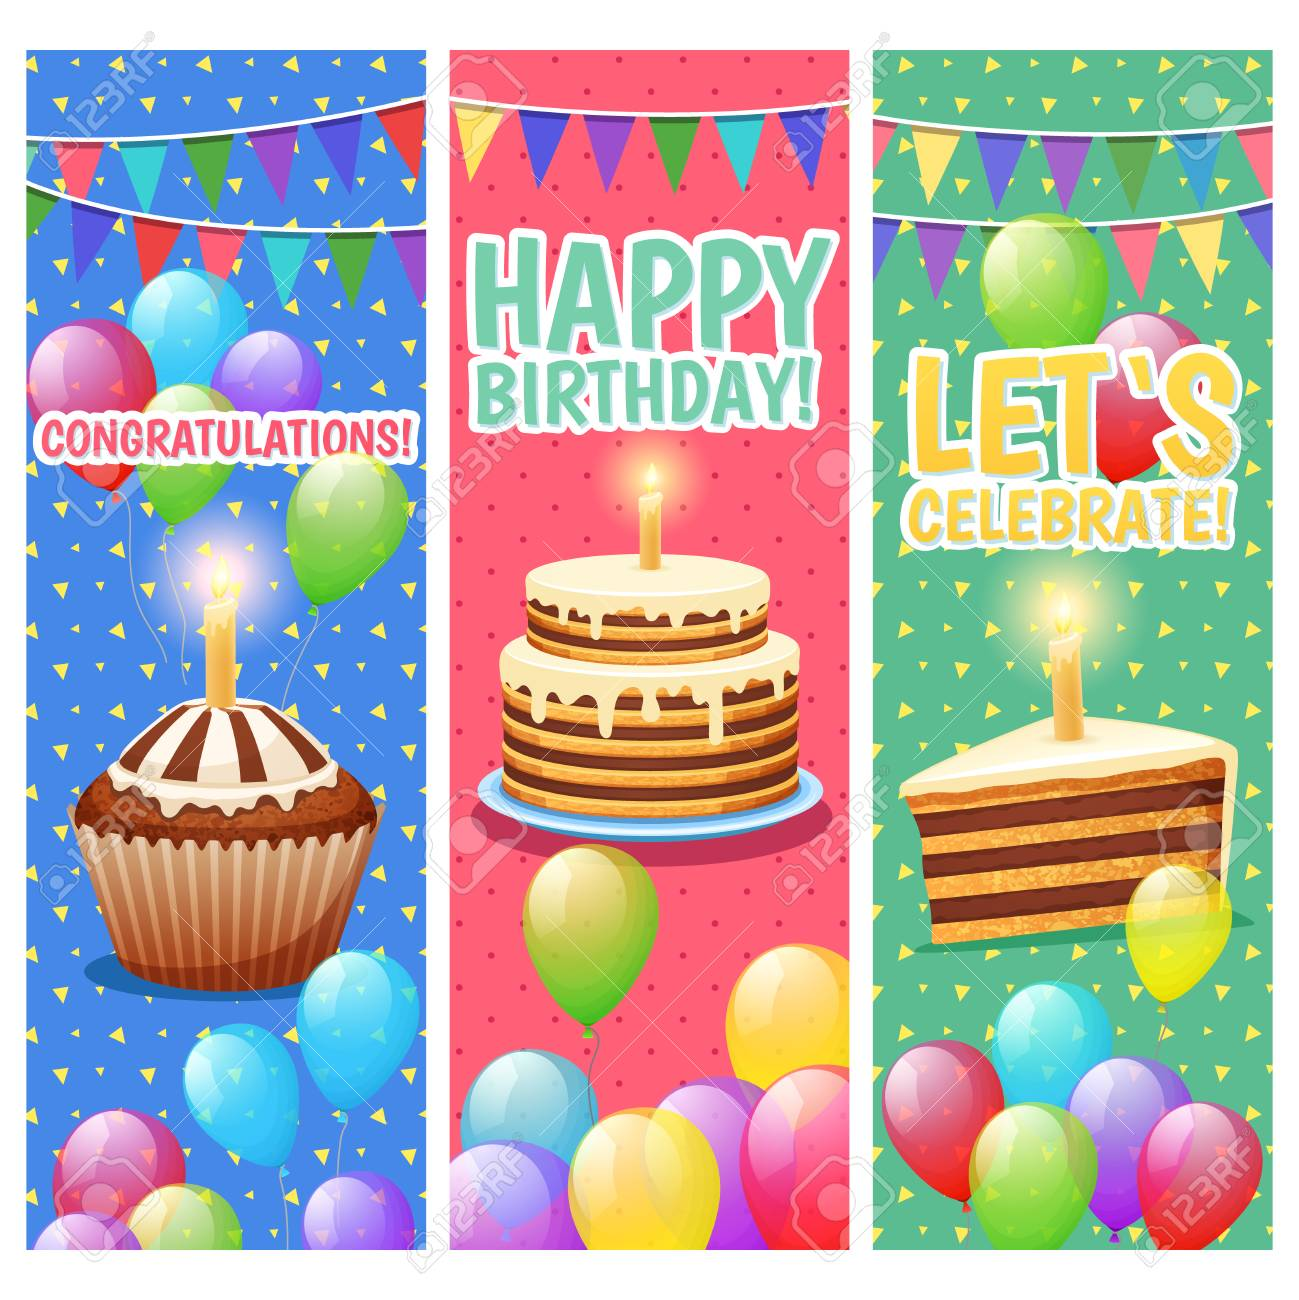 Congratulations And Celebrations Colorful Vertical Banners Set